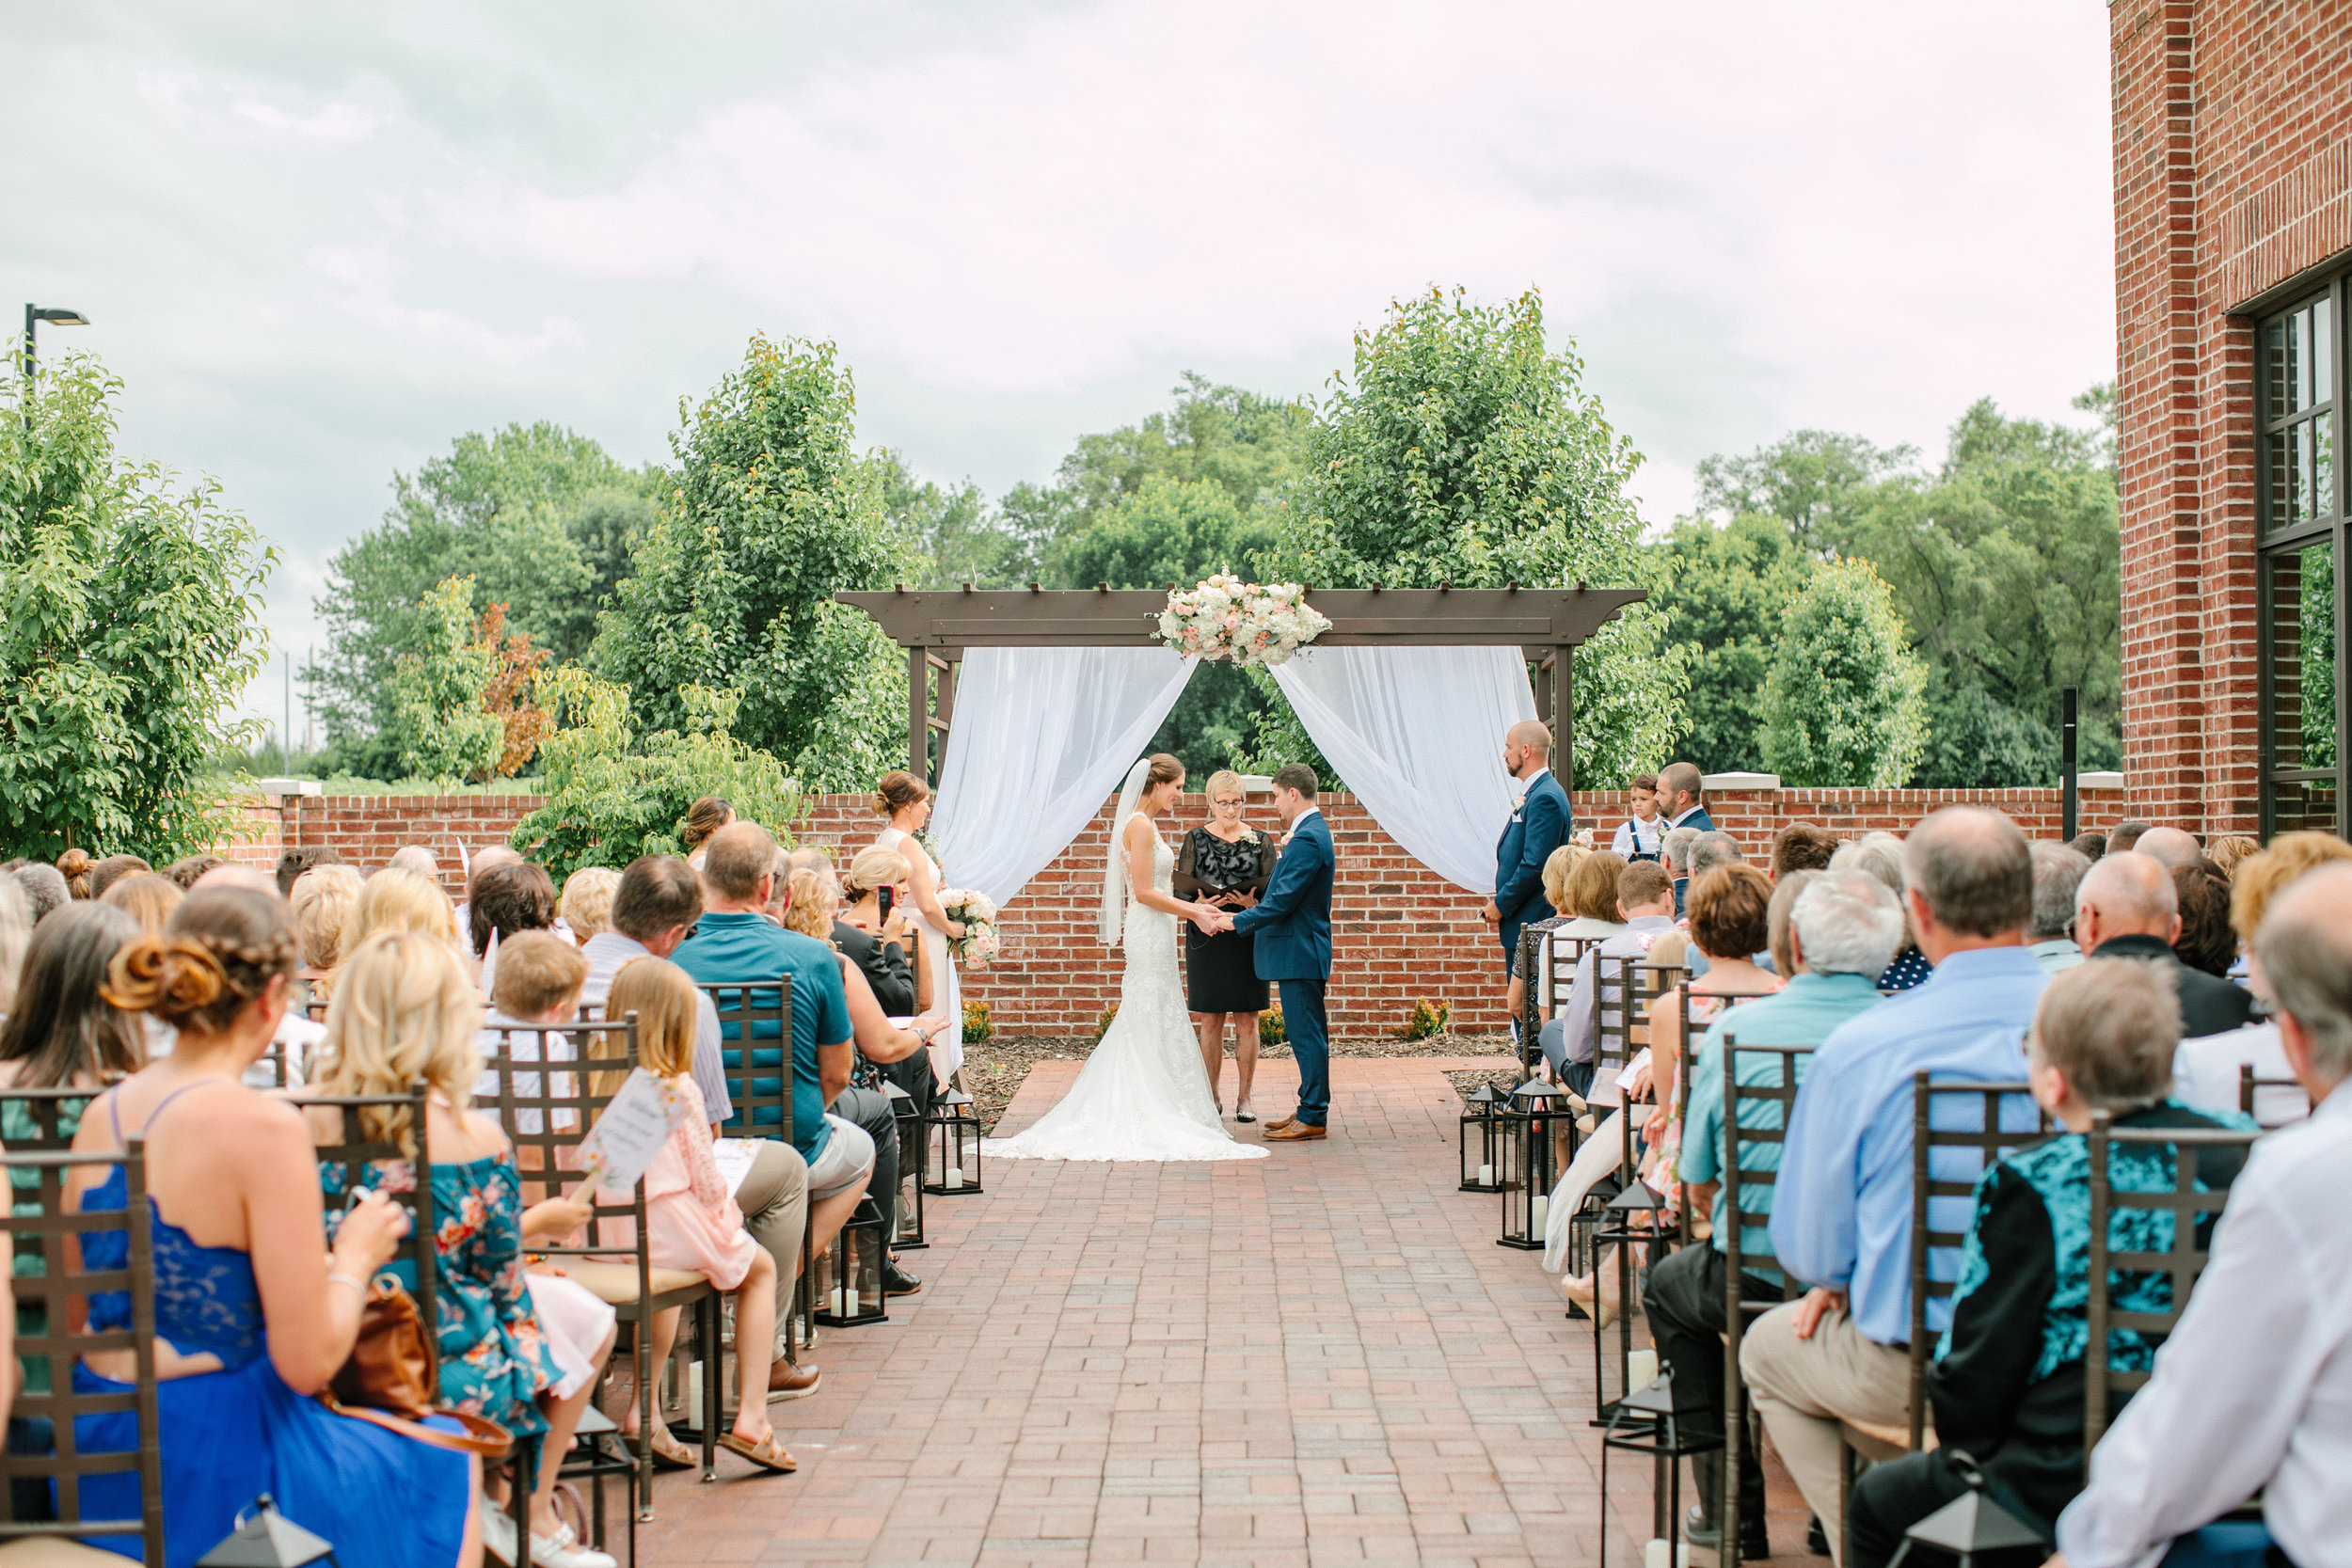 nicole_kyle_west_des_moines_iowa_wedding_photographers_46.jpg